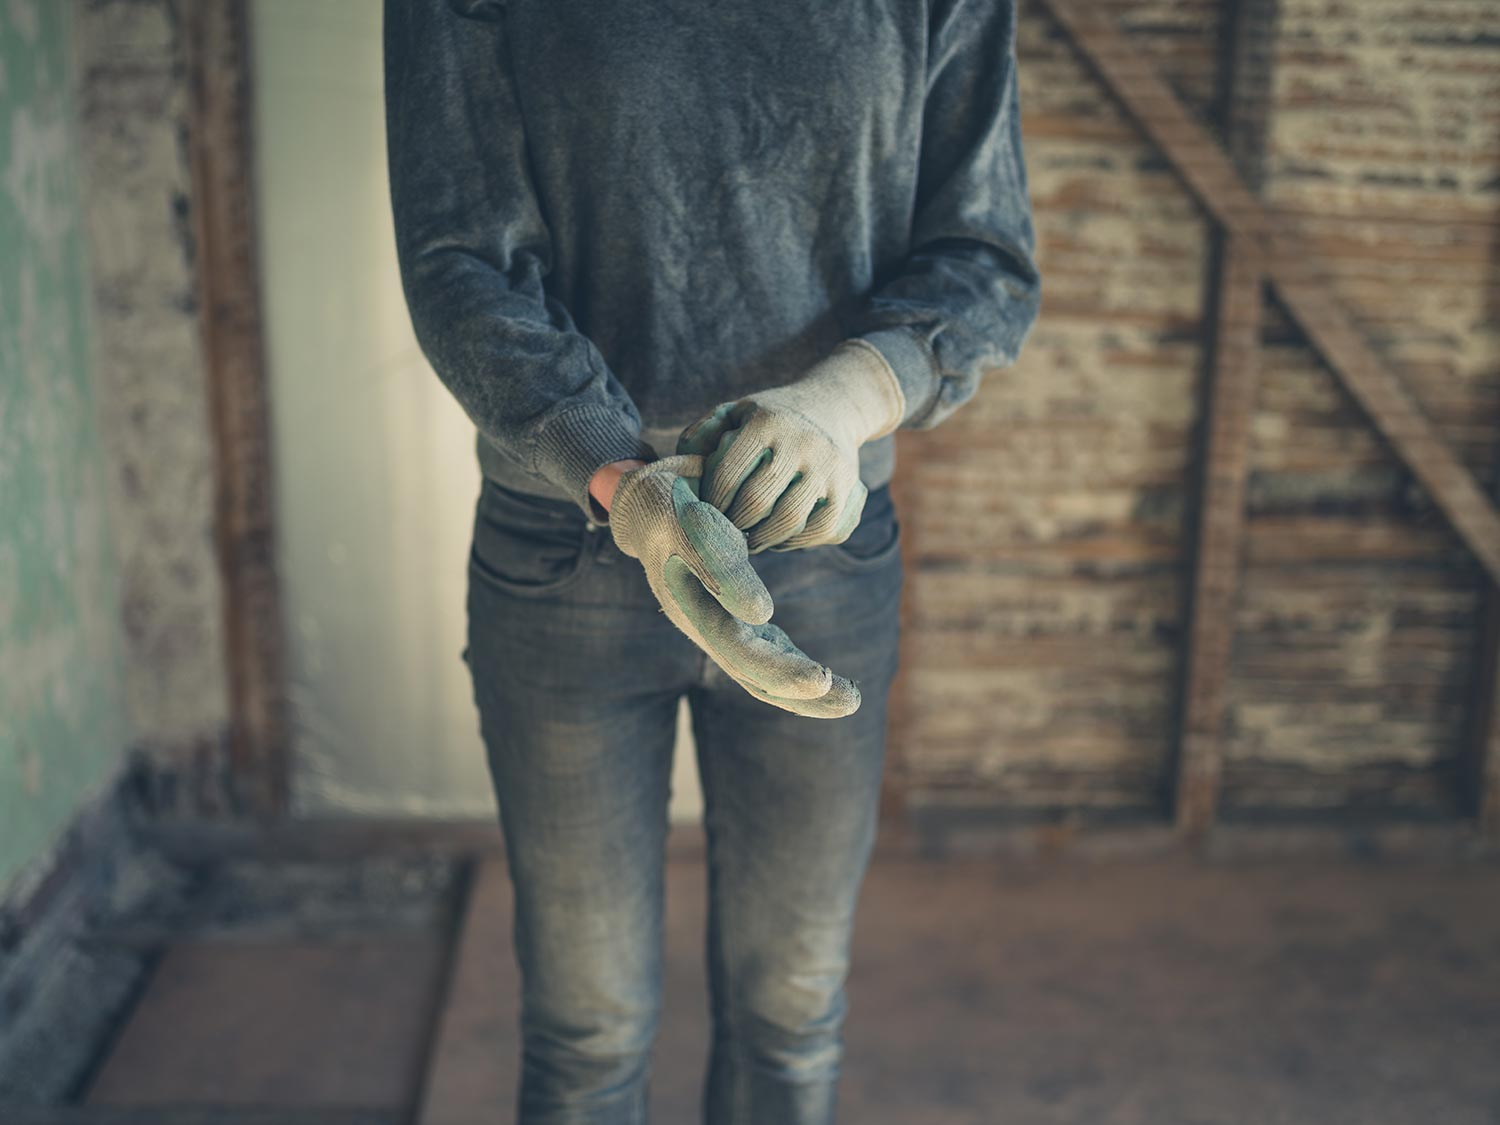 A young worker standing in a loft undergoing renovations and is putting on a pair of gloves